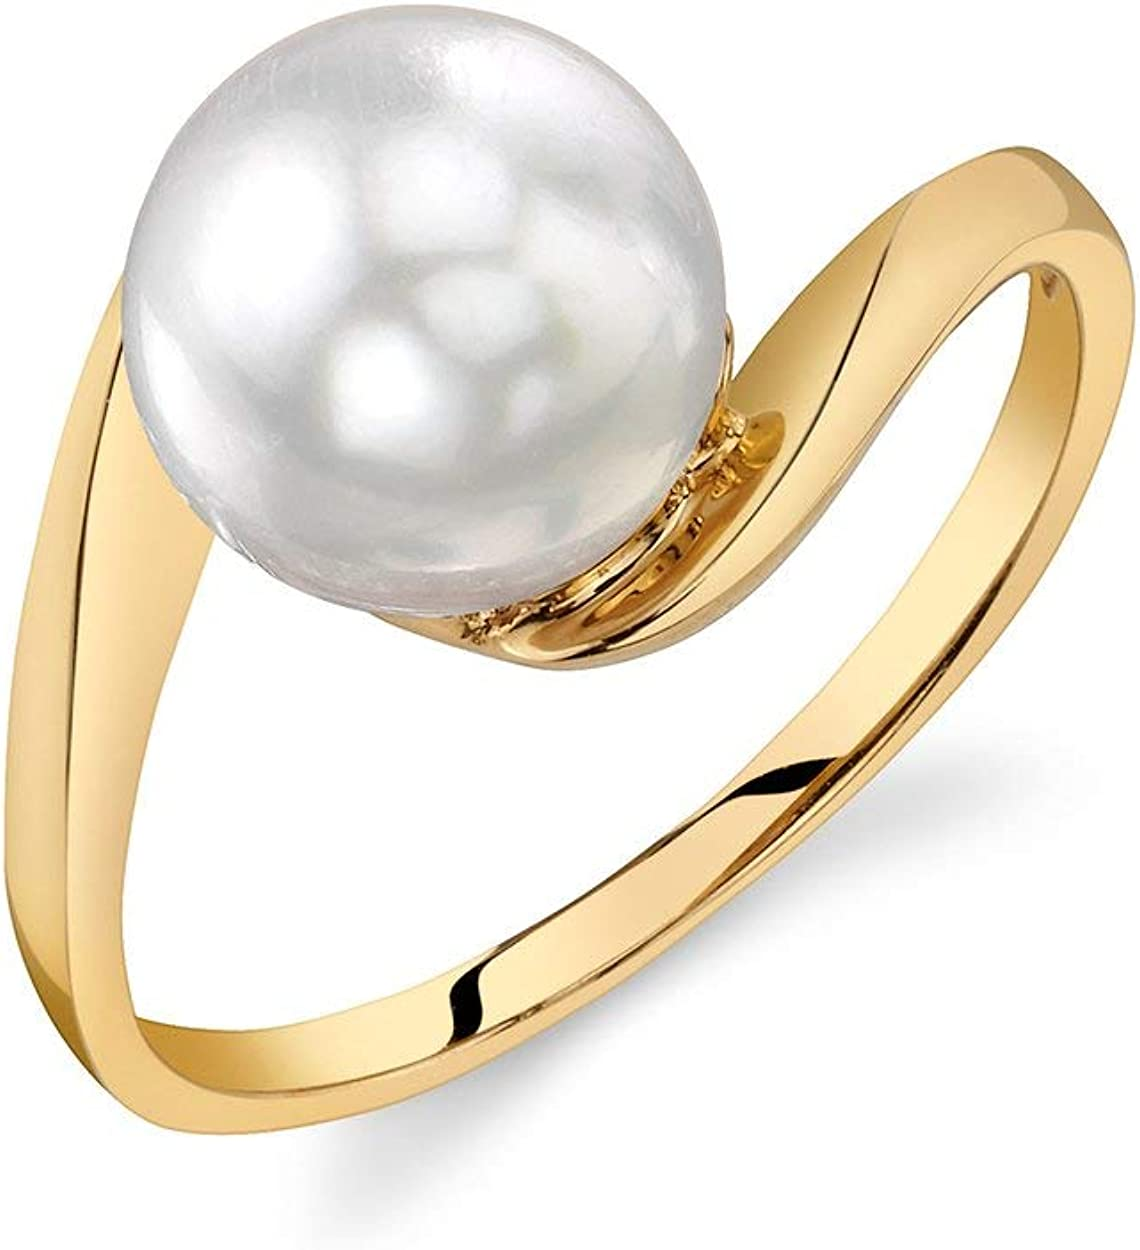 Pearl Ring with 8mm White South Sea Cultured Pearl and 14K Gold Felice Pearl Ring for Women - THE PEARL SOURCE